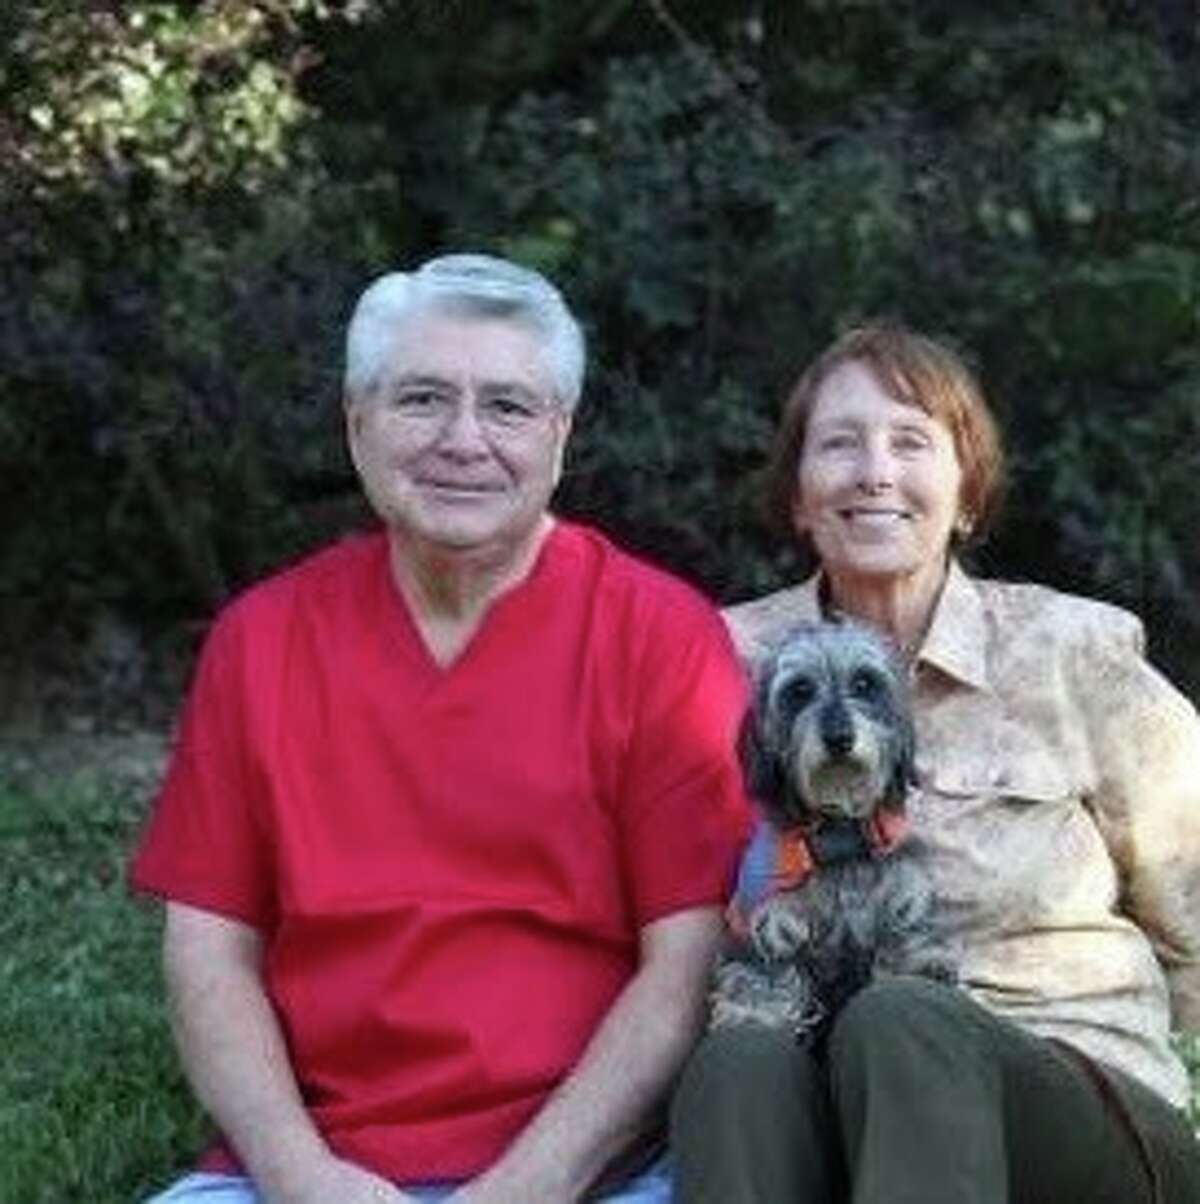 Carl and Linda Colmenares, pictured with their dog, Lulu, operate the Original Kennel of Kingwood.